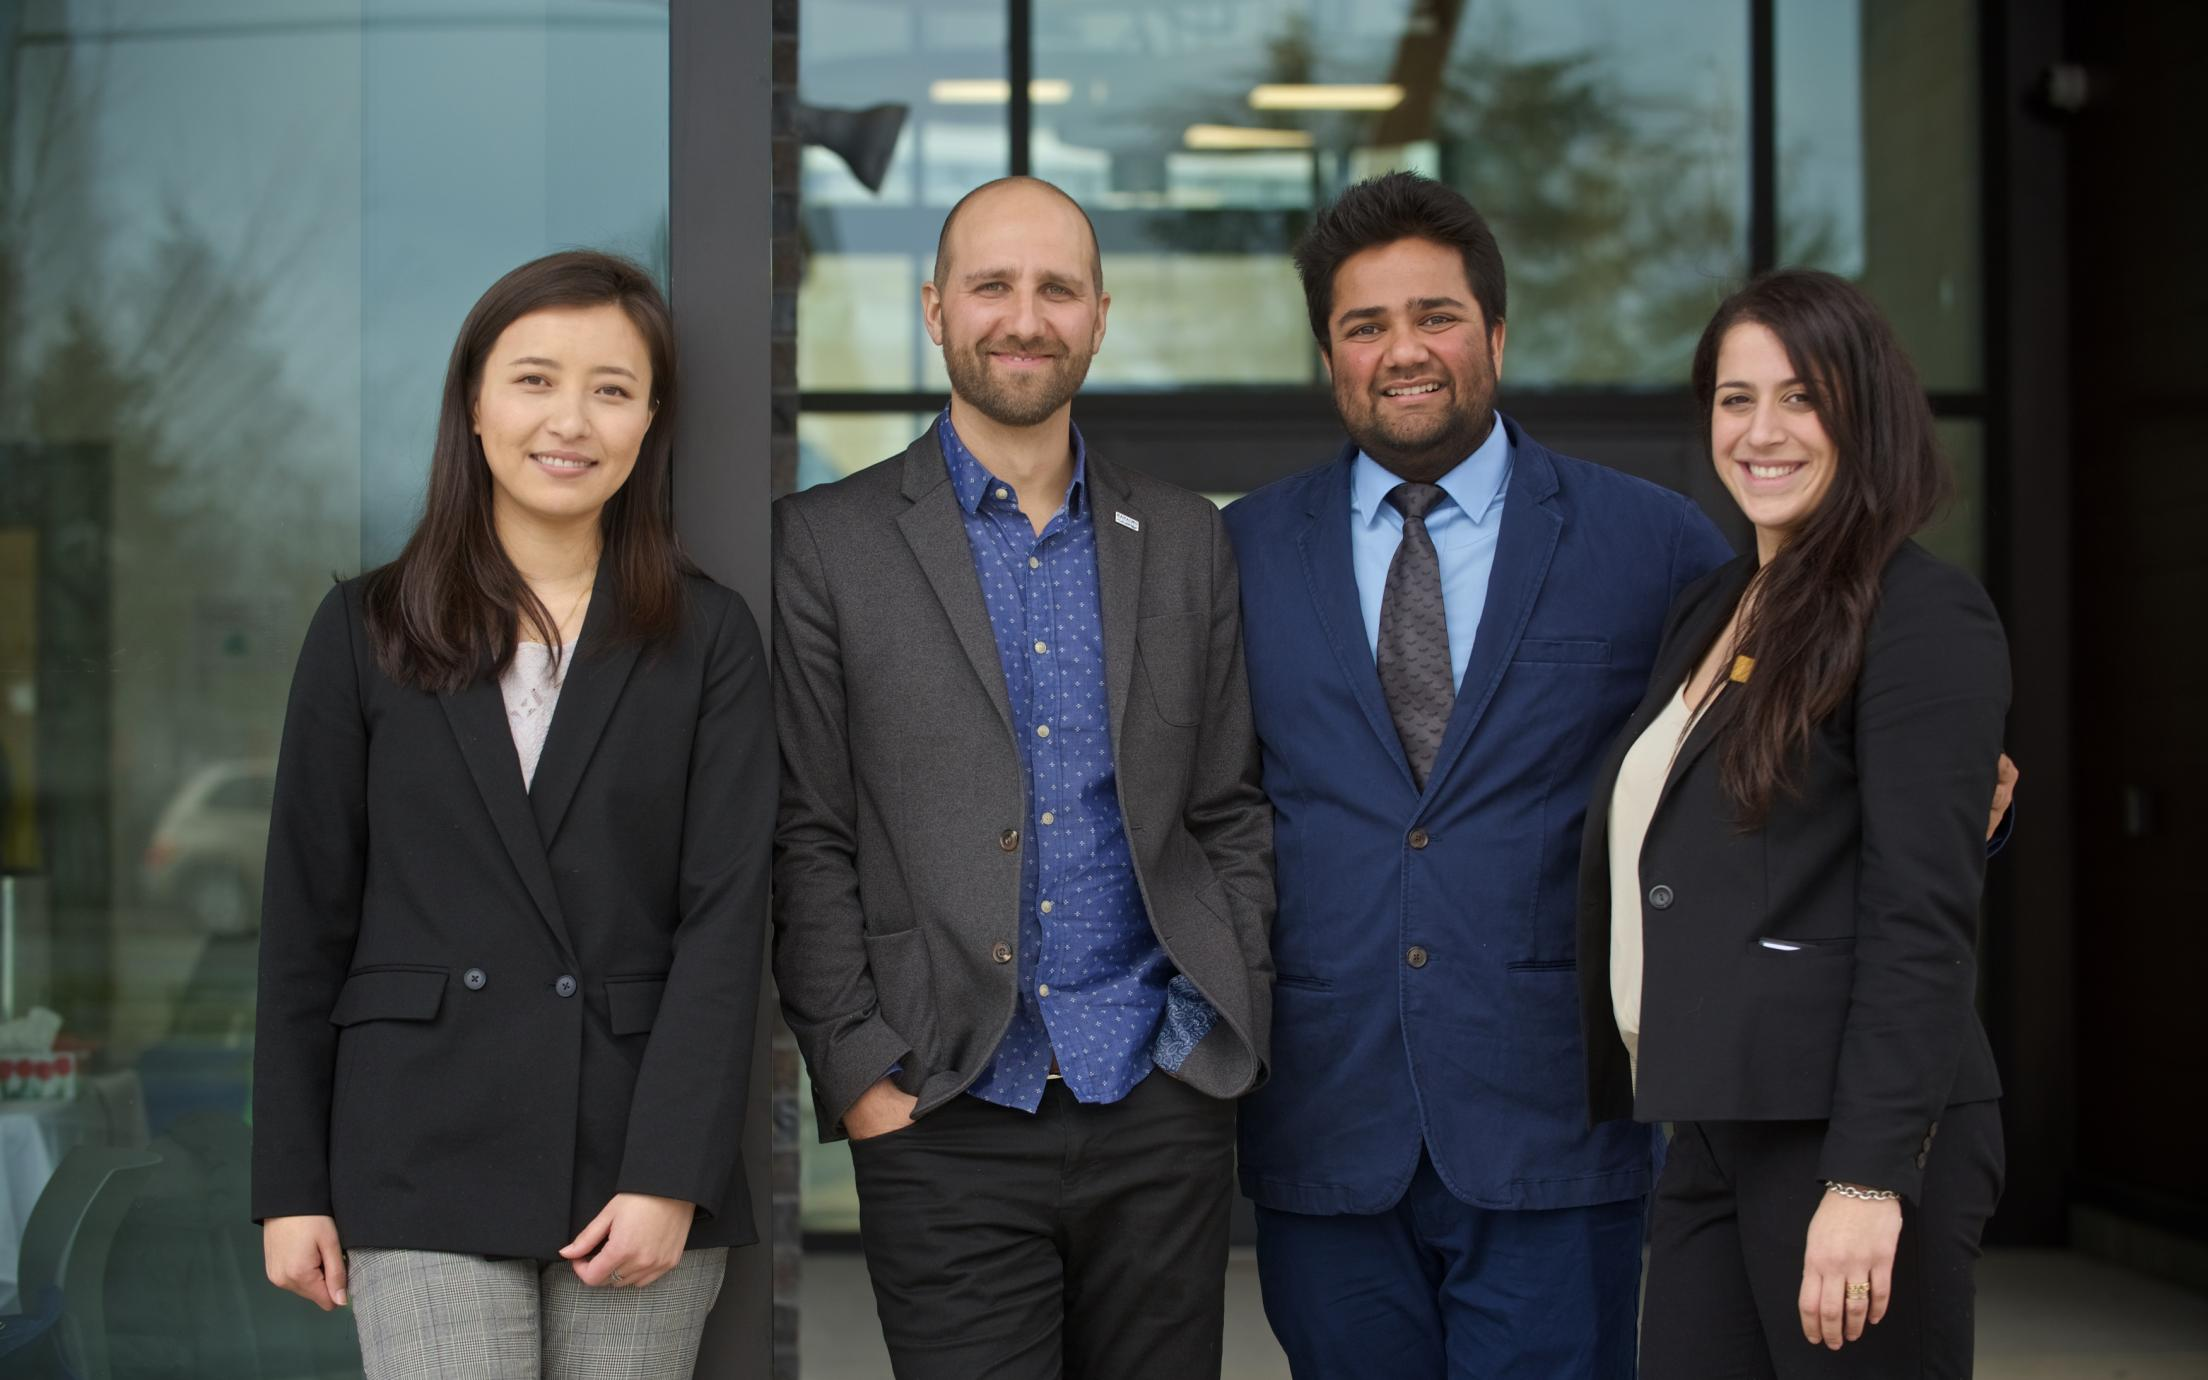 Four MBA students in business attire standing together for a photo